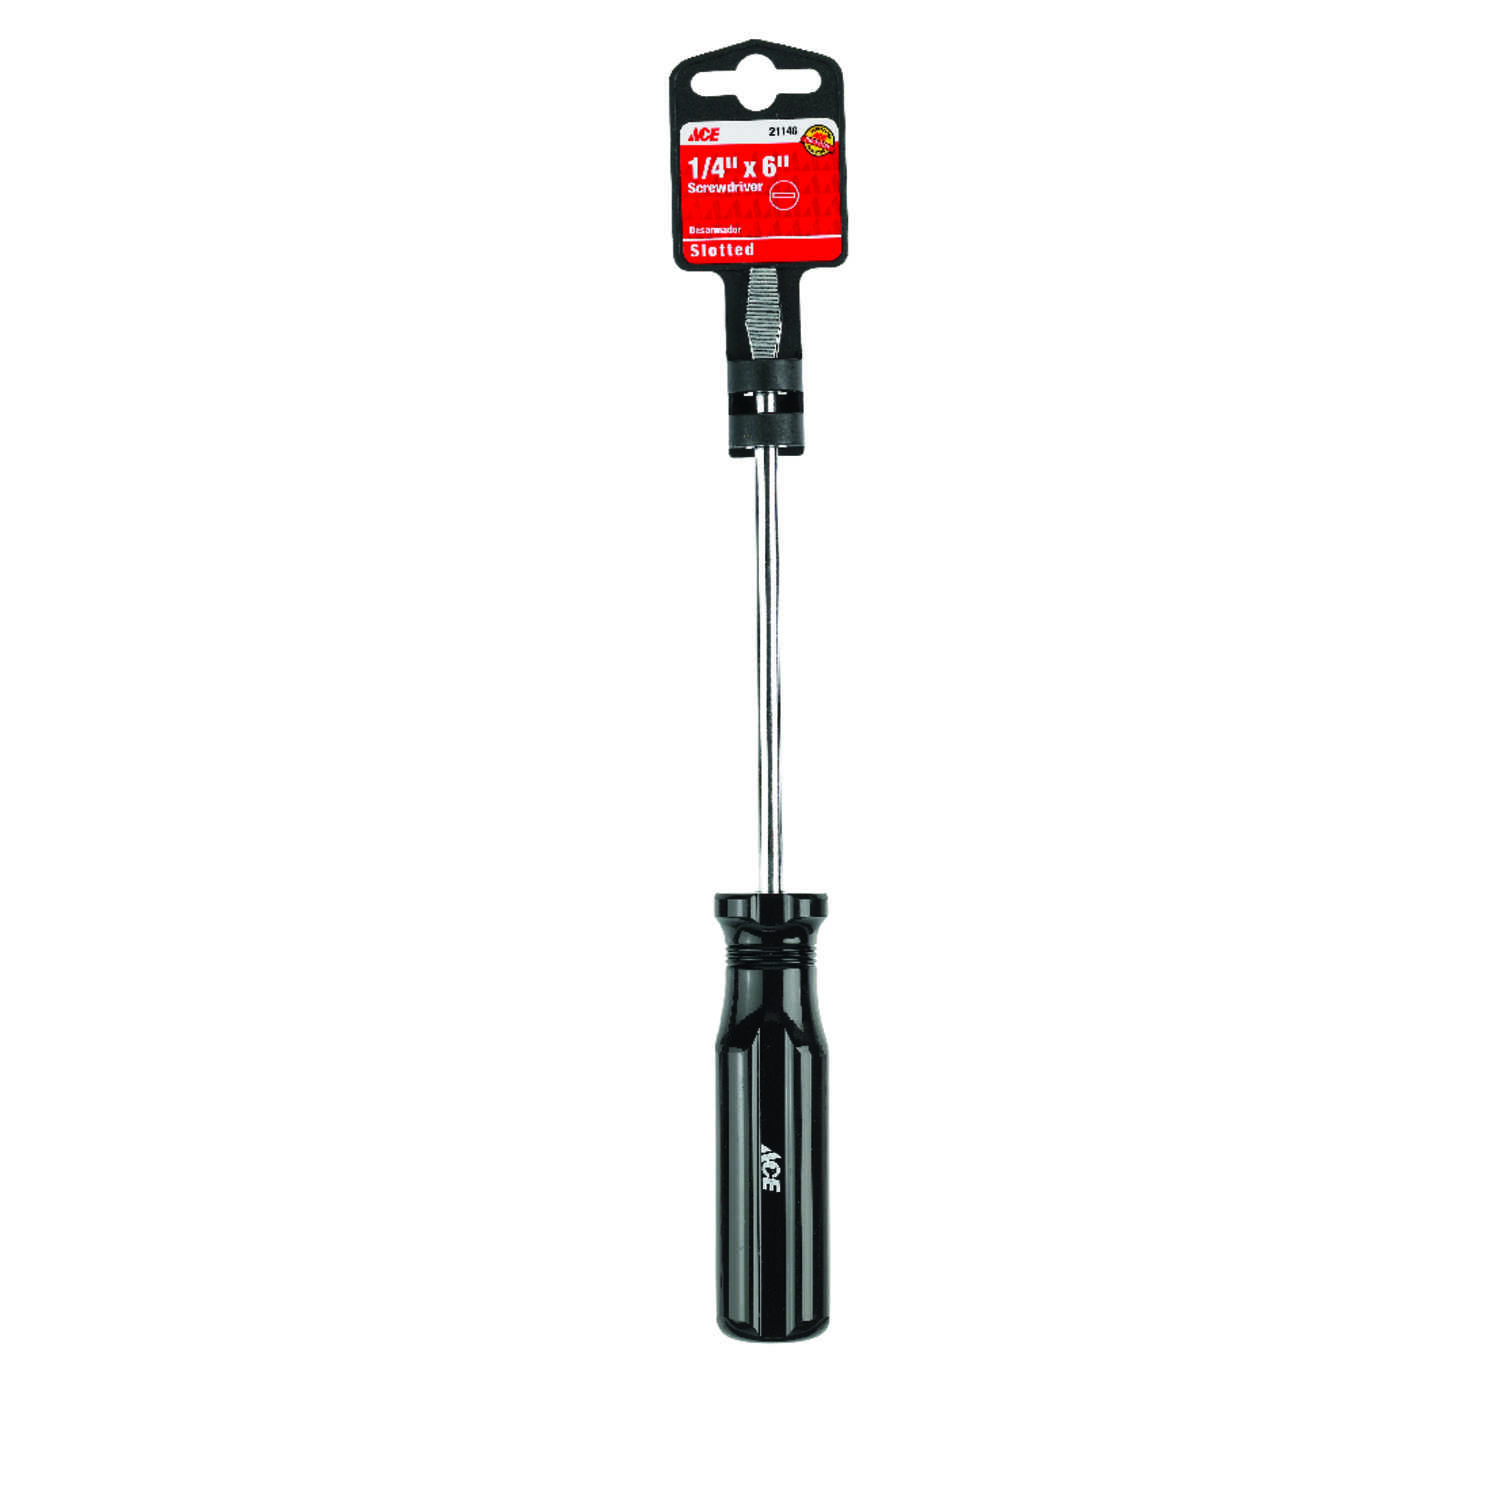 Ace  6 in. Slotted  1/4  Screwdriver  Steel  Black  1 pc.